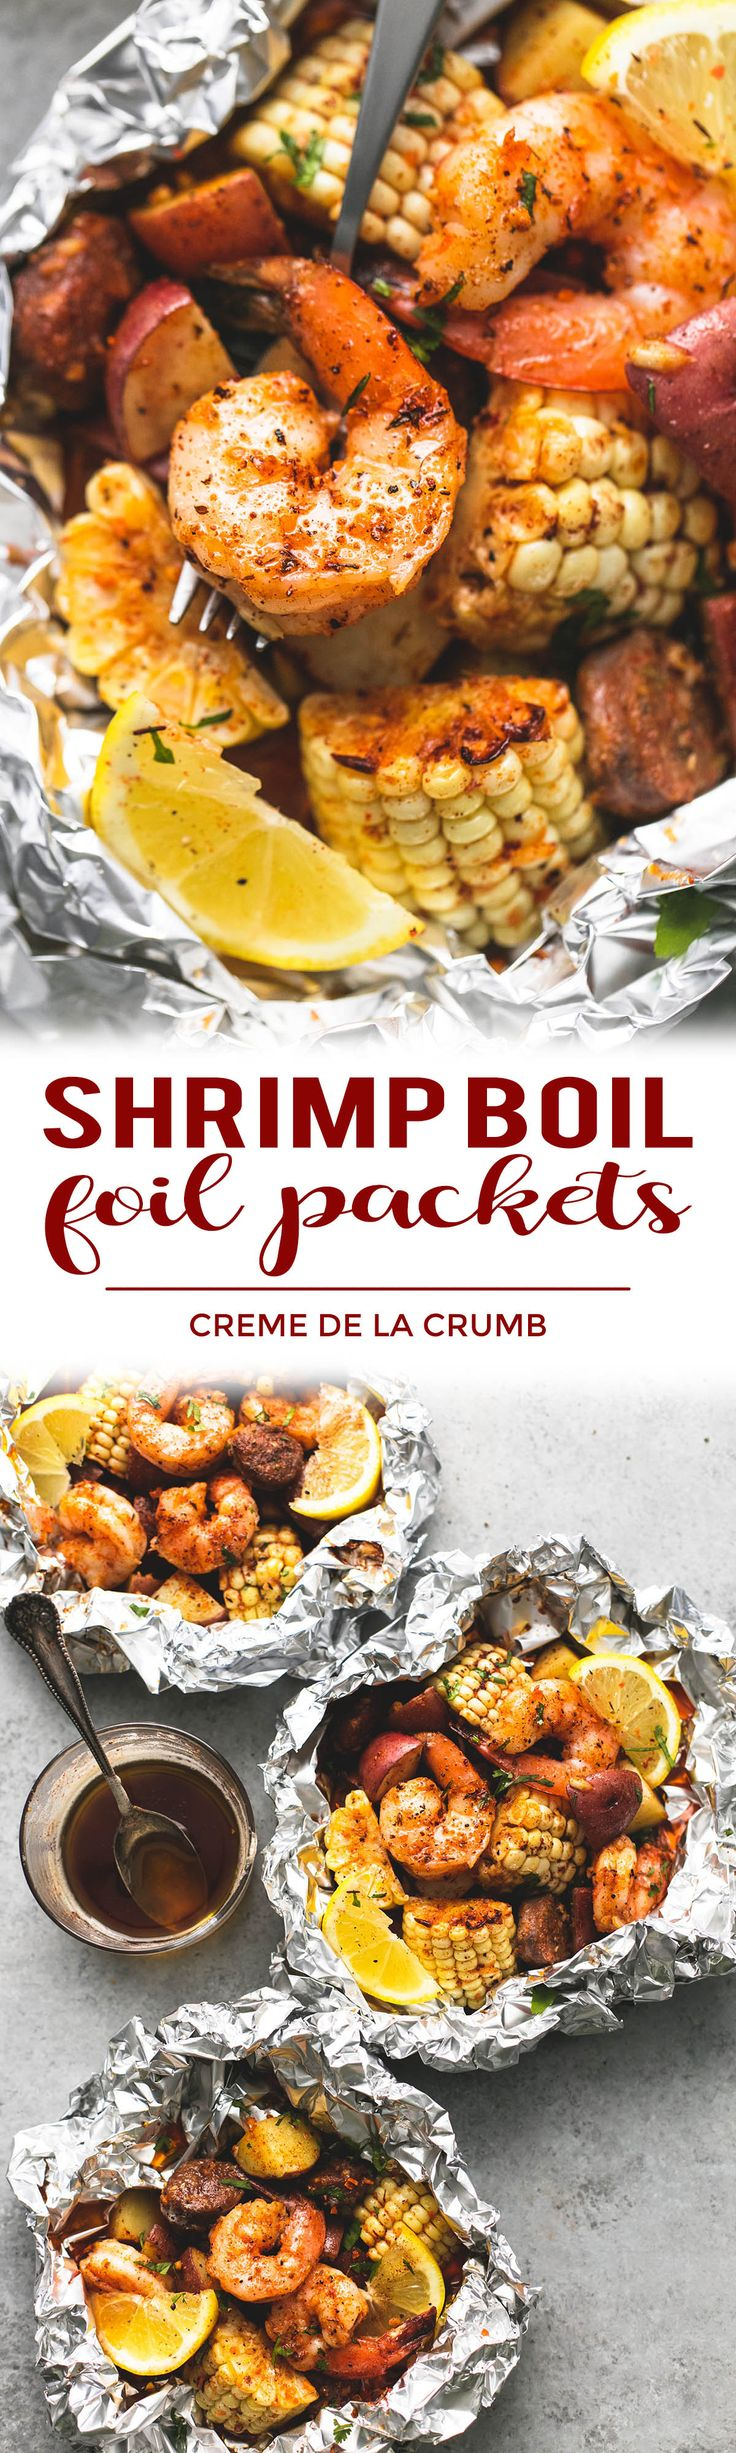 Easy, tasty shrimp boil foil packs baked or grilled with summer veggies, homemade seasoning, fresh lemon, and brown butter sauce | lecremedelacrumb.com